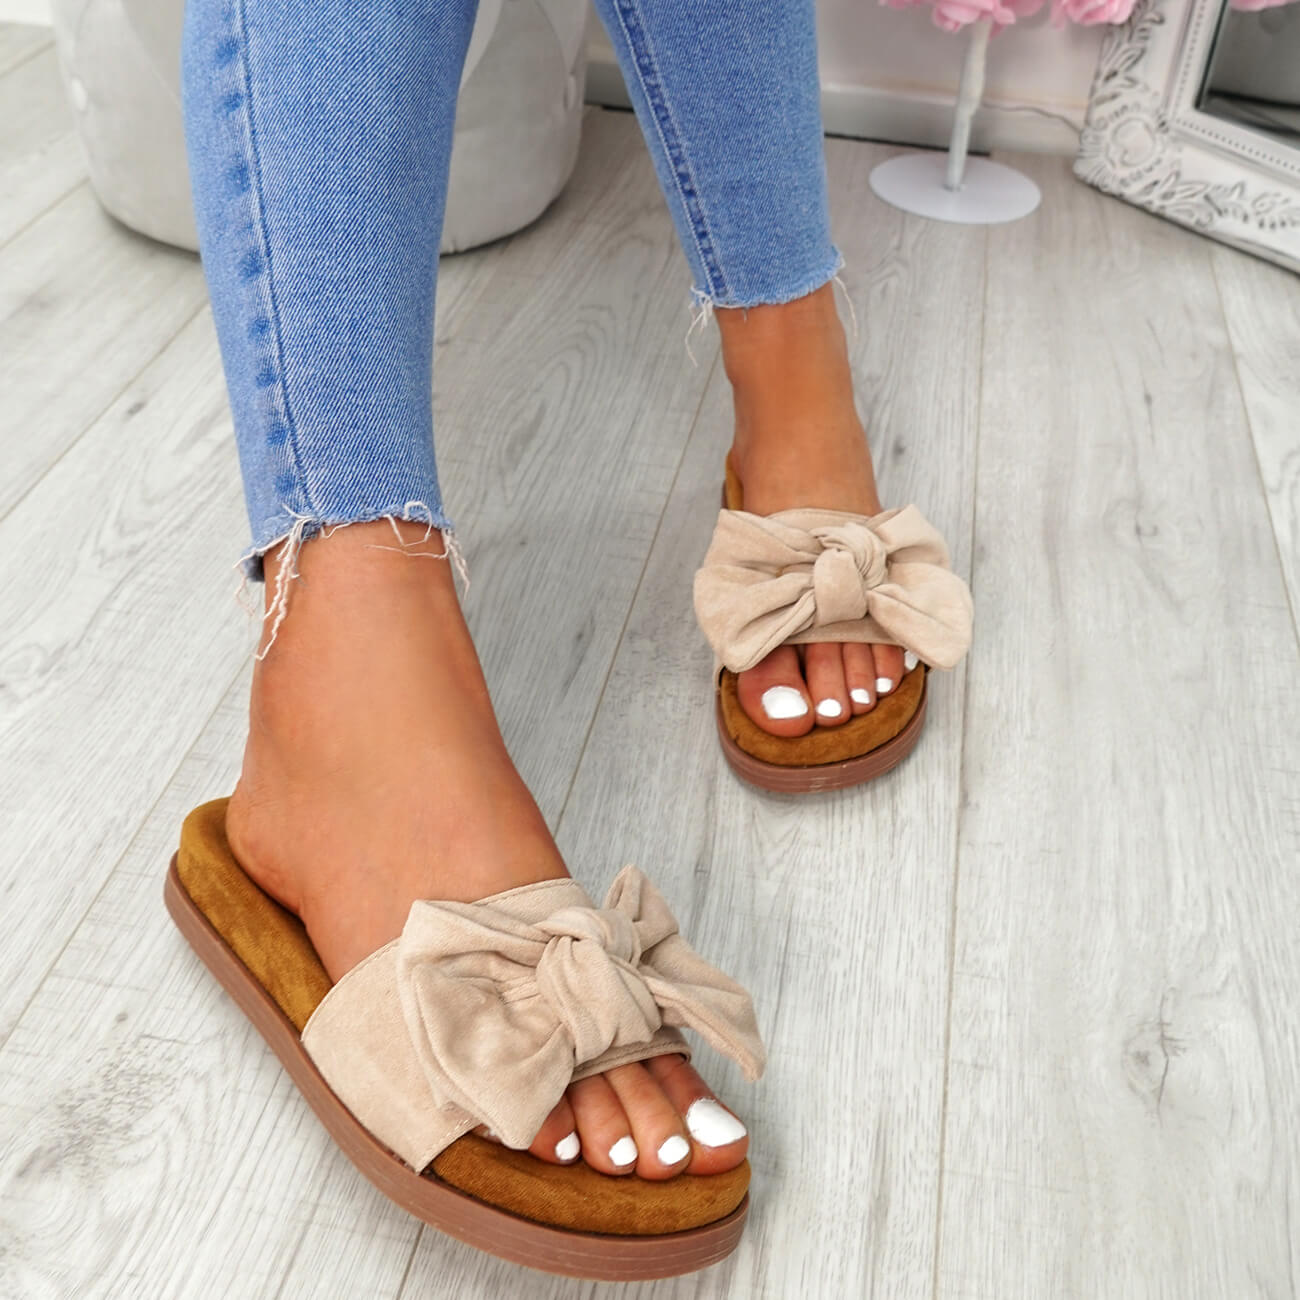 WOMENS-LADIES-FLAT-SANDALS-FRONT-BOW-COMFY-SUMMER-CASUAL-HOLIDAY-SHOES-SIZE-UK thumbnail 9